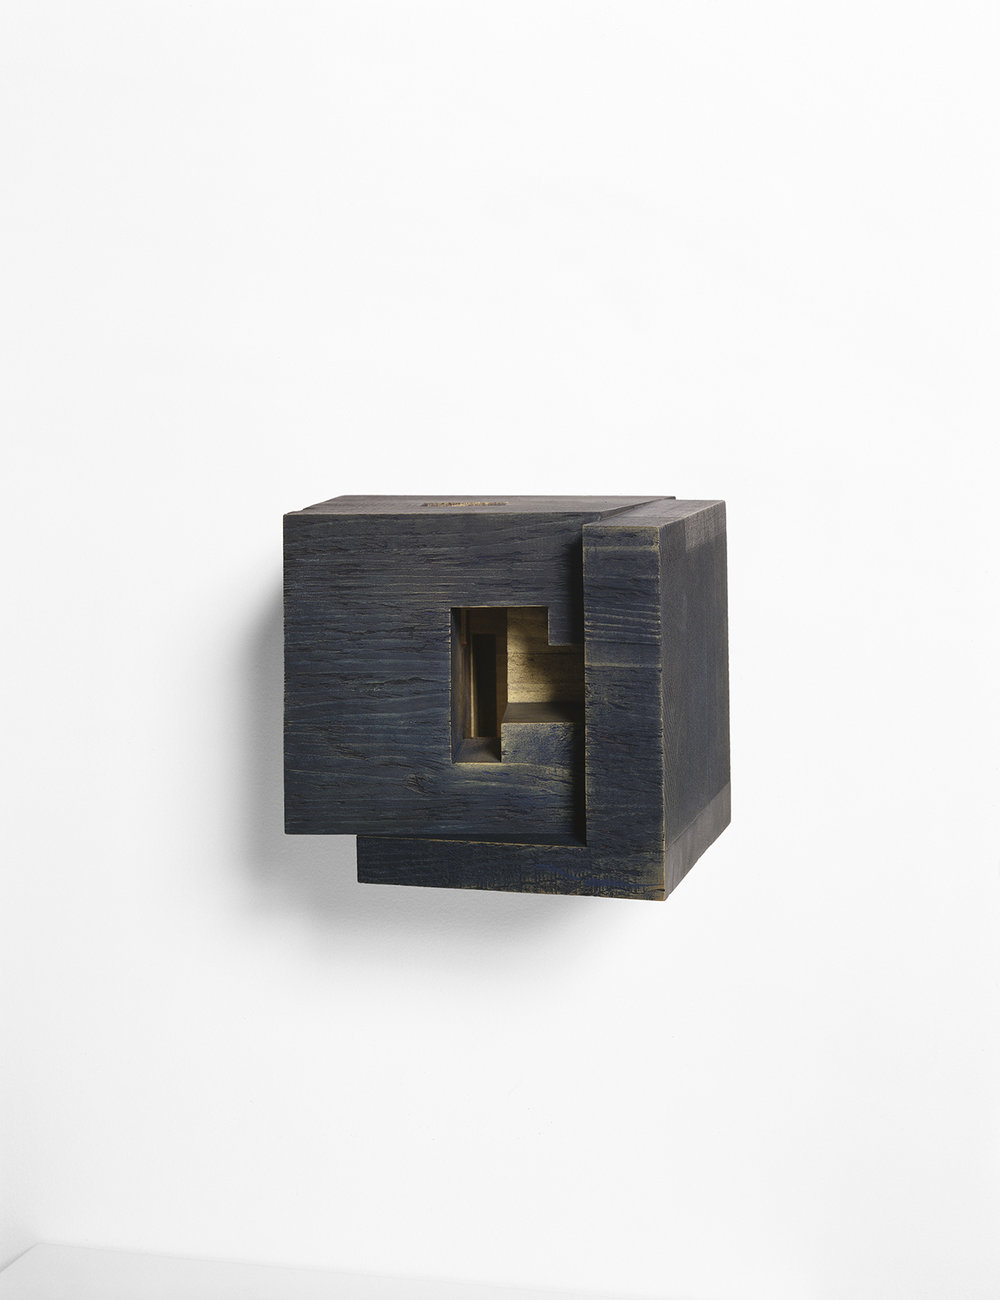 Demeure III  (2001)   Bois polychrome, 19 x 25 x 24 cm, collection de l'artiste. photo : Richard-Max Tremblay